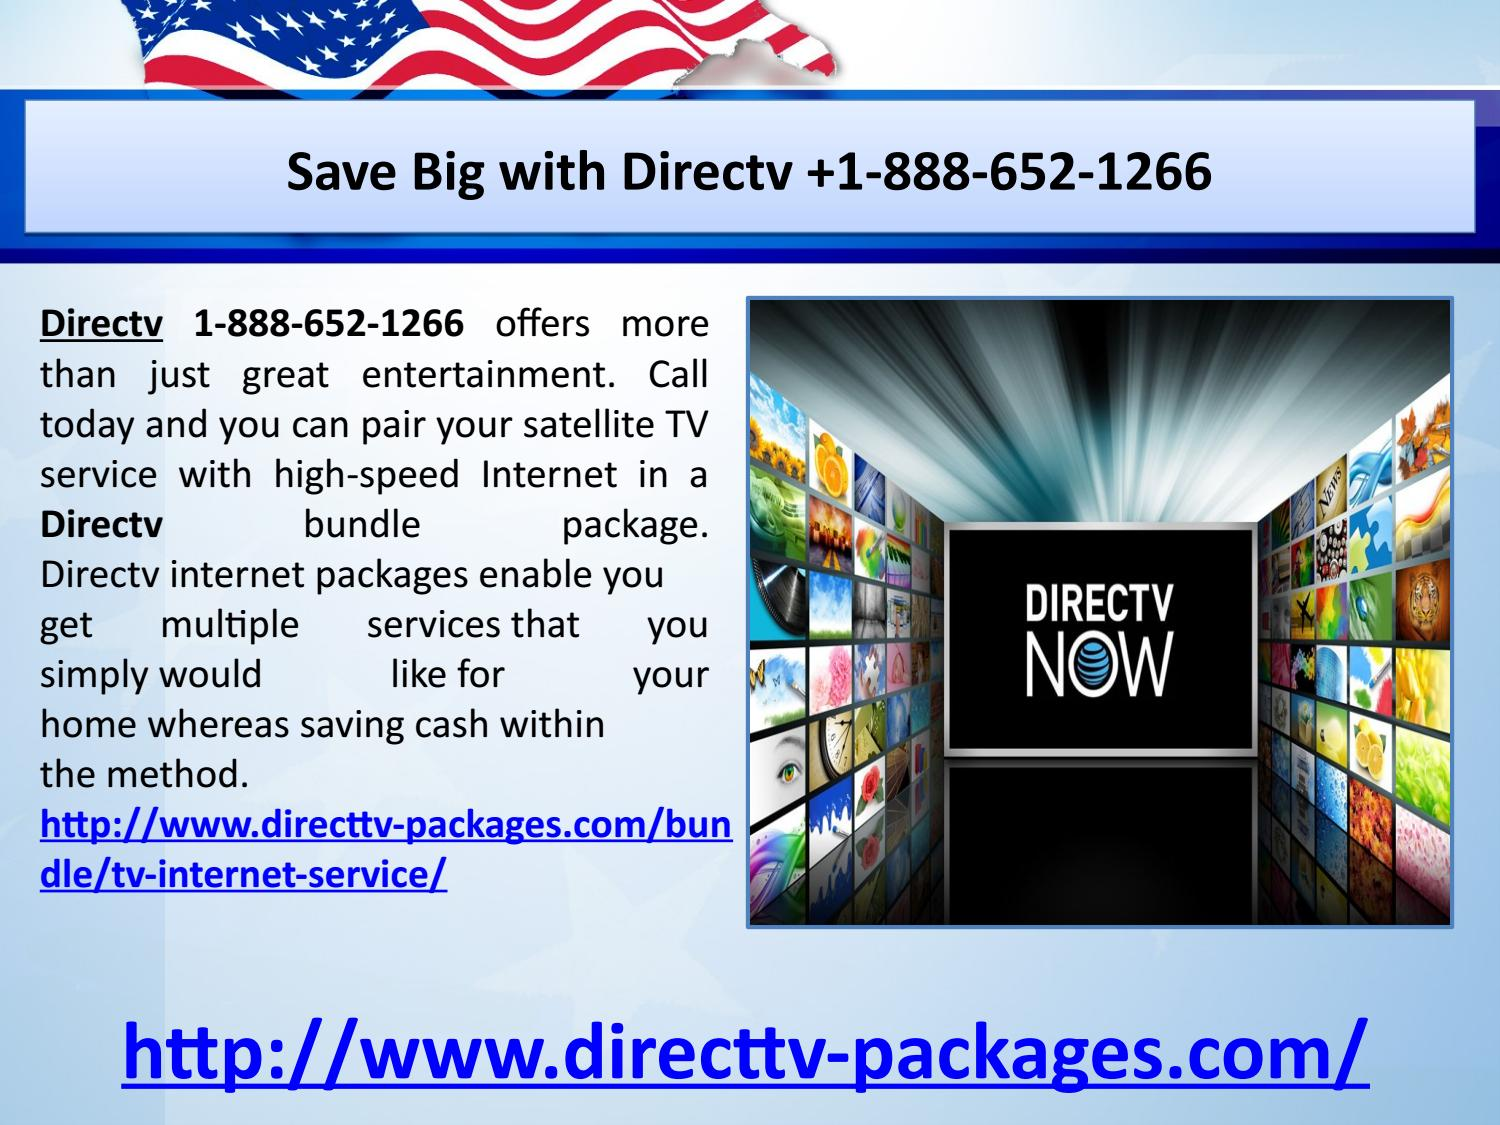 Does Directv Have Internet Service >> More Entertainment Options With Direct Tv 1 888 652 1266 By